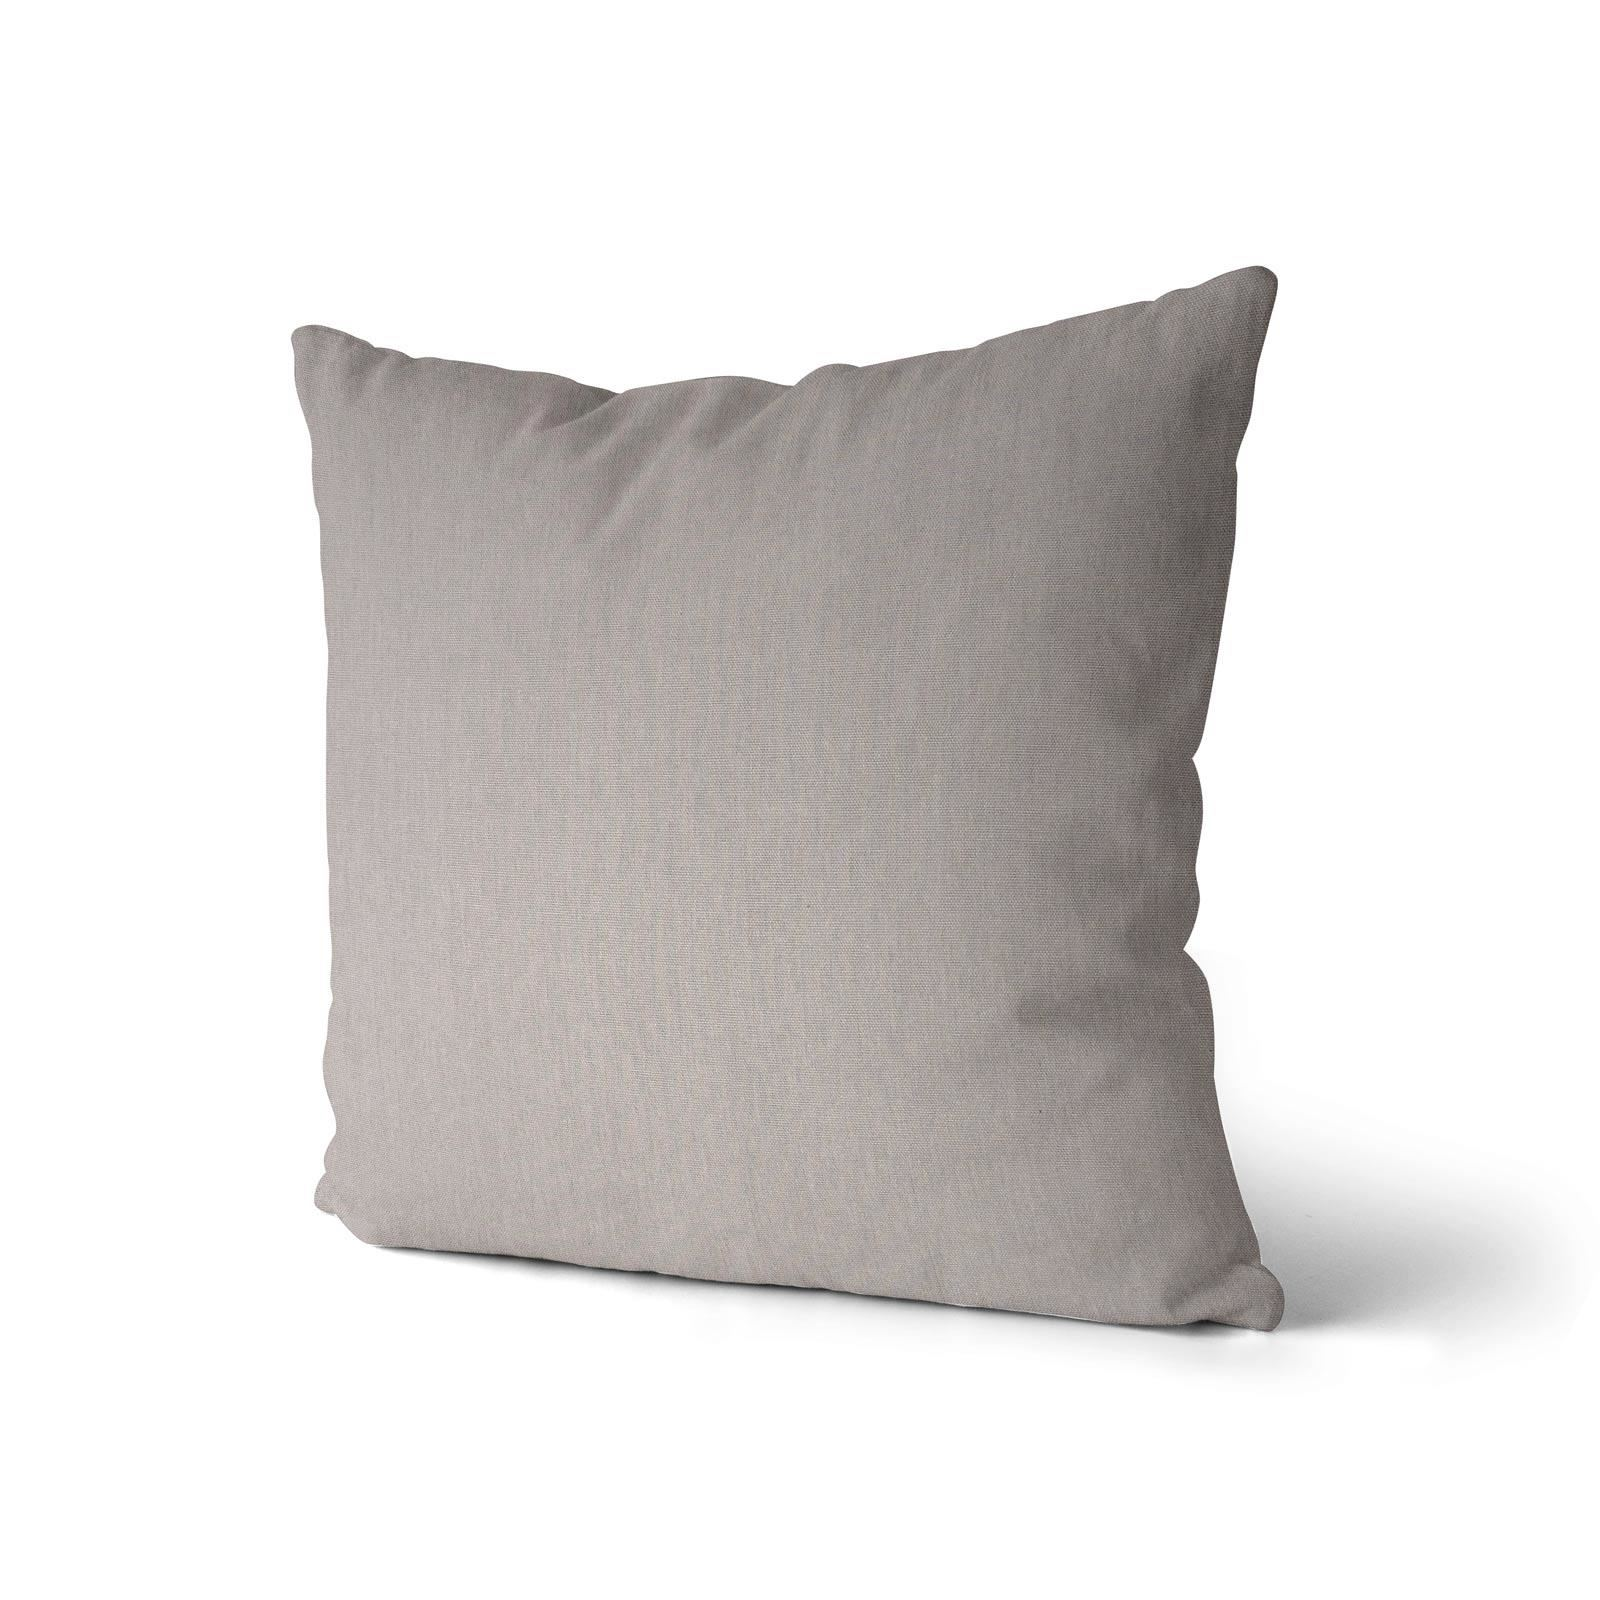 Grey-Ochre-Mustard-Cushion-Cover-Collection-17-034-18-034-Covers-Filled-Cushions thumbnail 65